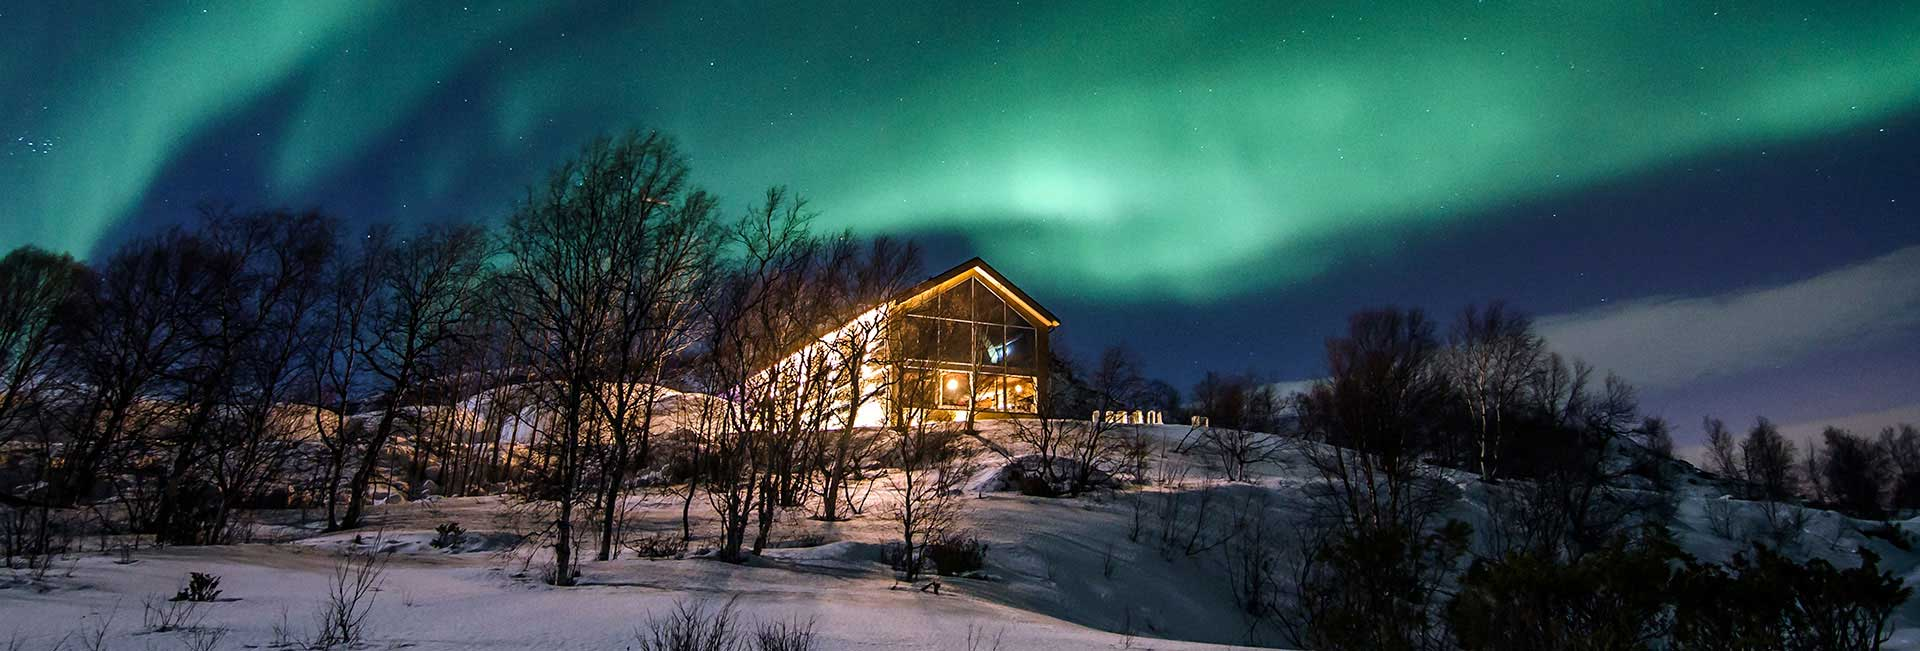 Northern Lights over Snow Hotel in Kirkenes, Norway. Photo credit: Kirkenes Snow Hotel